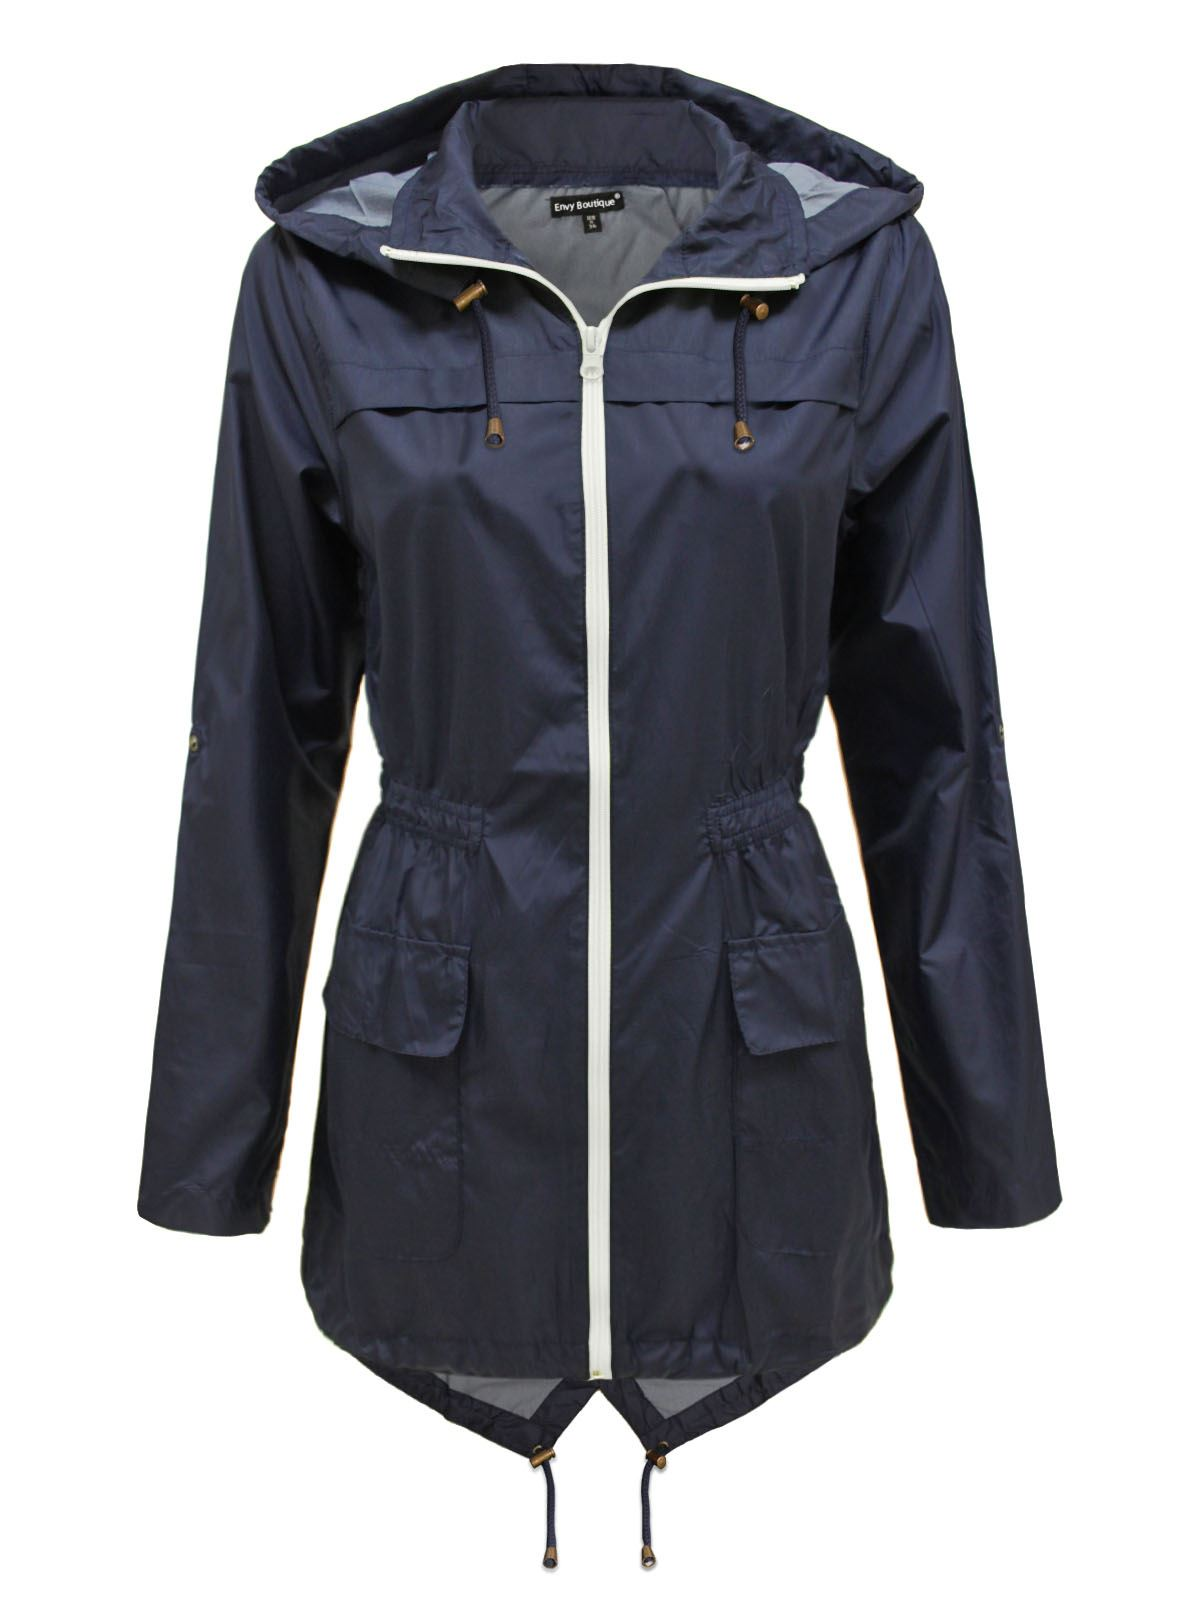 NEW LADIES WOMENS PLAIN PARKA MAC HOODED WATERPROOF RAINCOATS